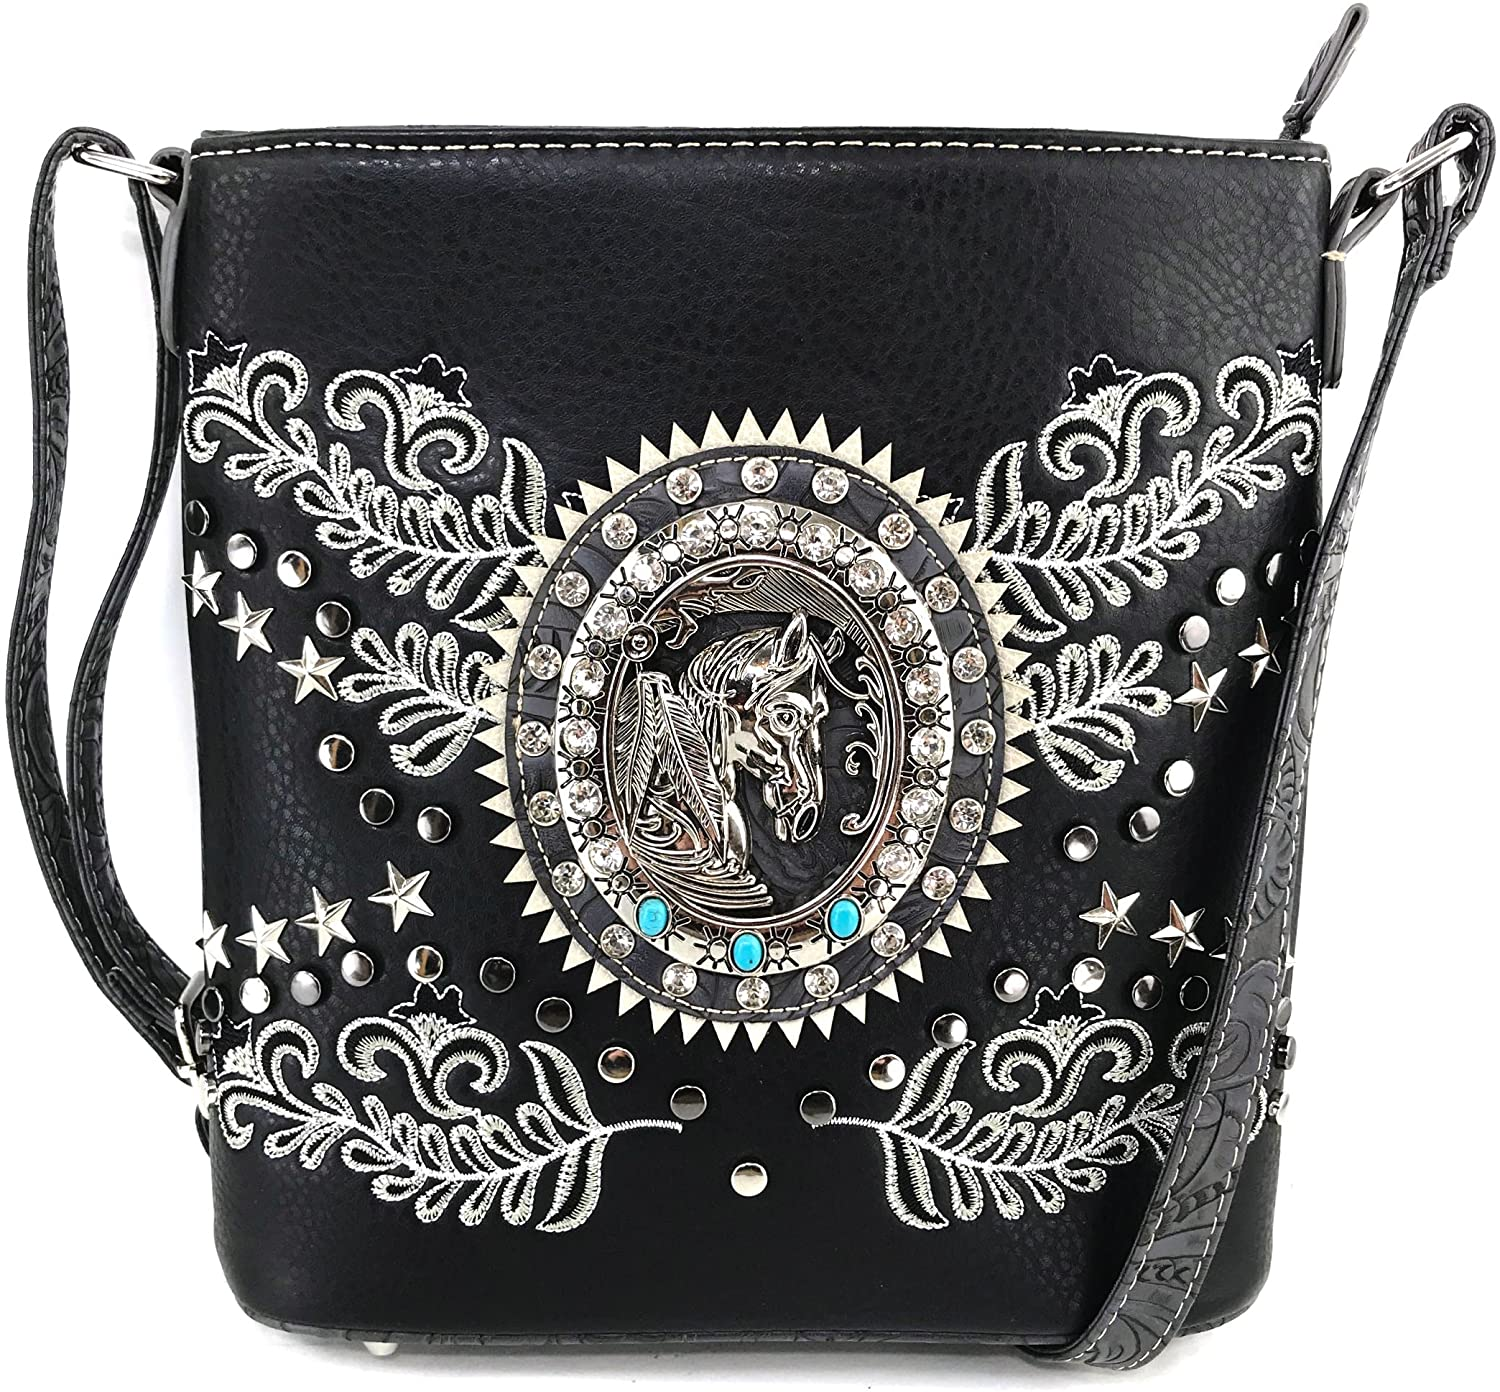 Justin West Horse Bling Rhinestone Floral Embroidery Stud Star Messenger Purse Cross Body Strap